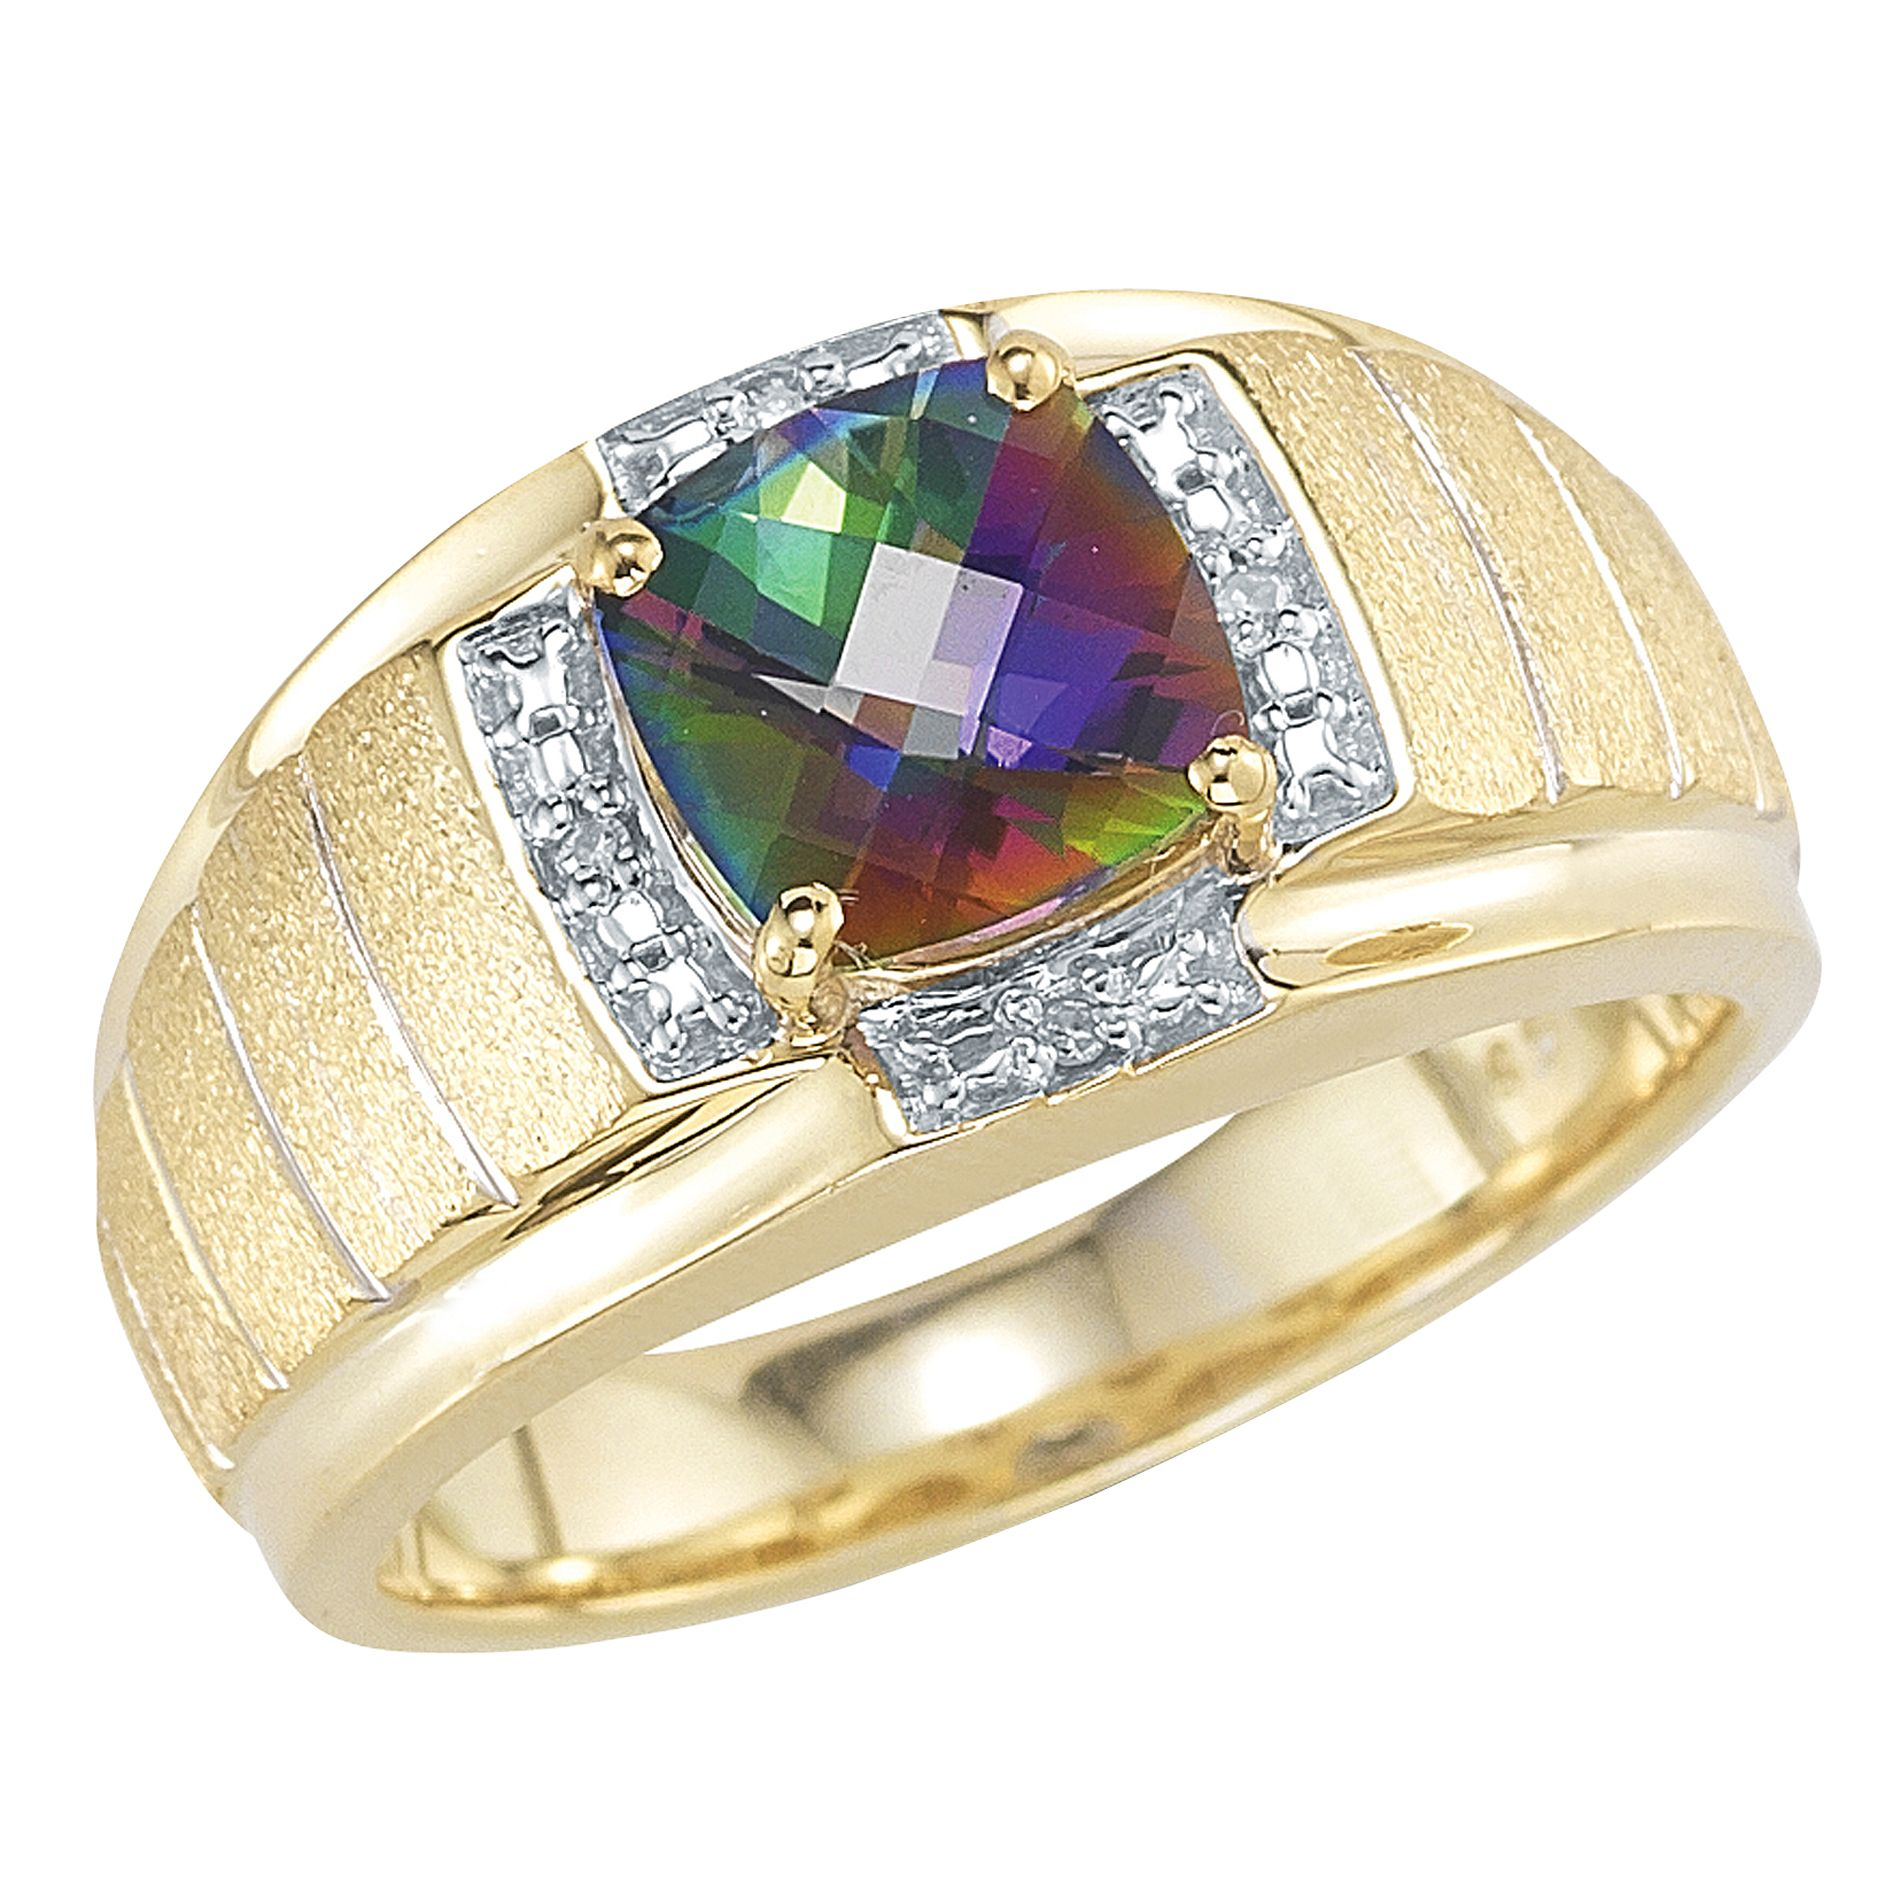 18Kt Gold Over Sterling Silver Mystic Topaz and Diamond Accent Ring